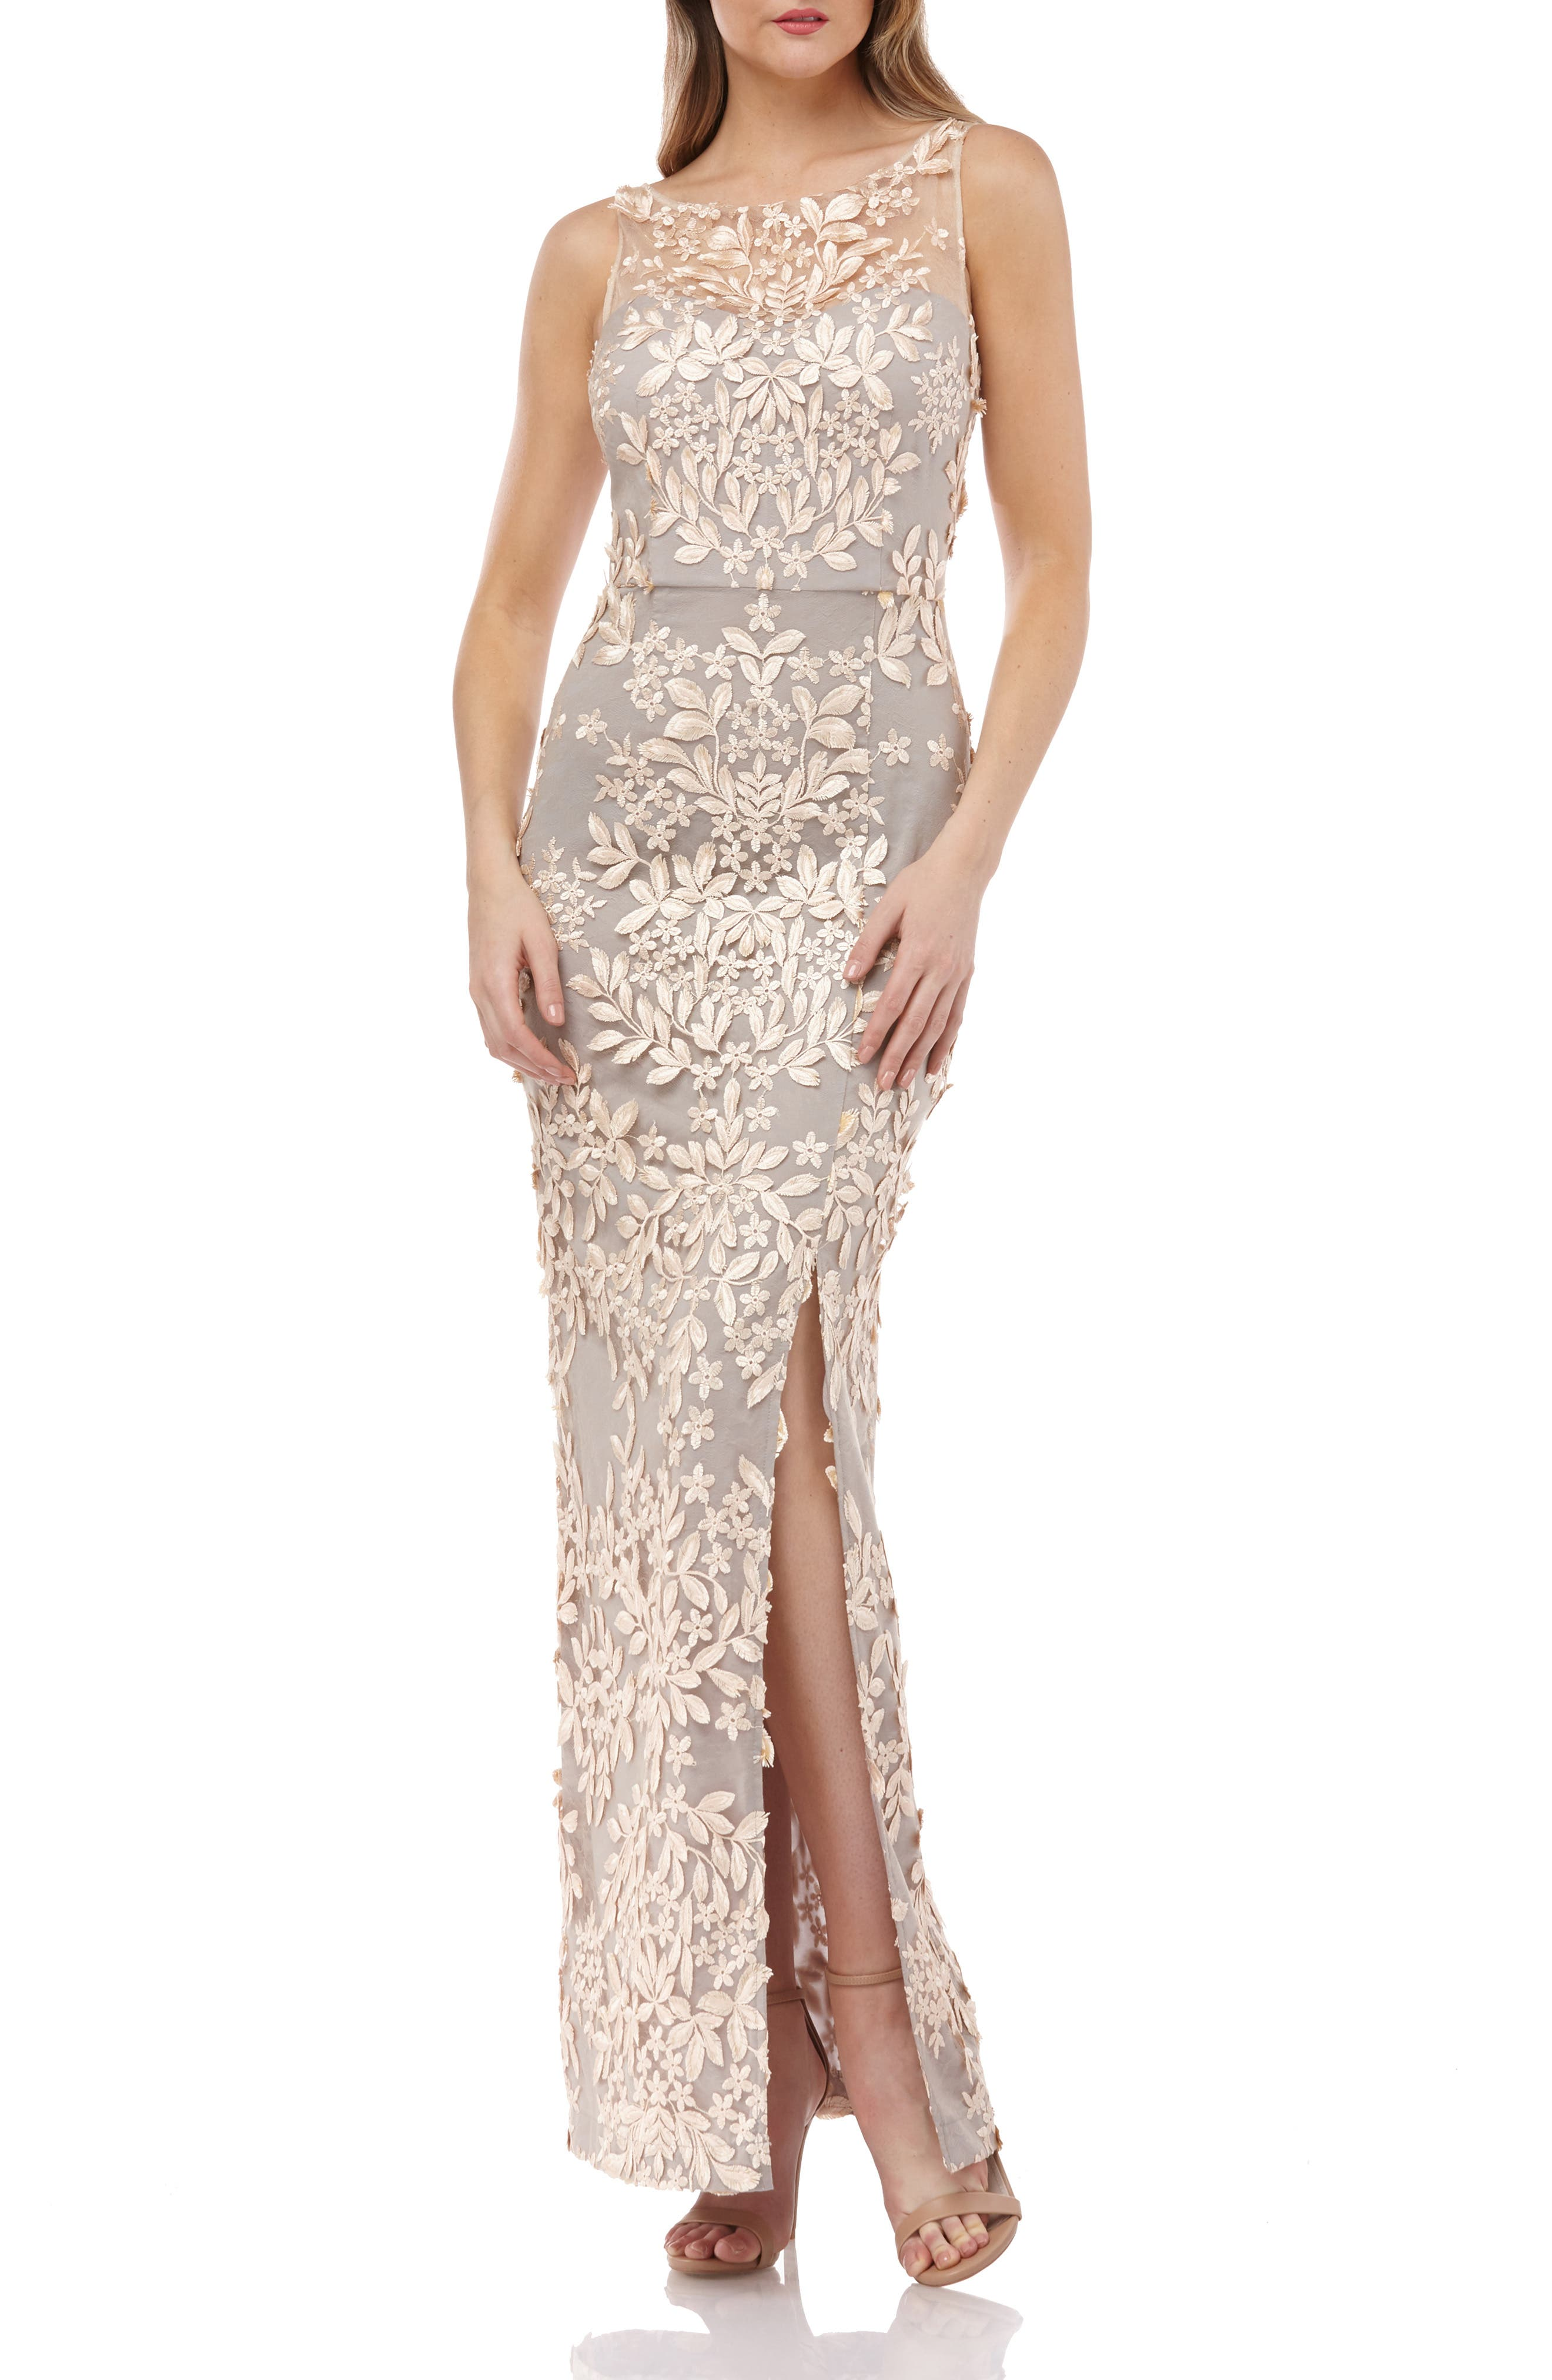 JS COLLECTIONS, Leaf Embroidered Gown, Main thumbnail 1, color, BLUSH/ NUDE